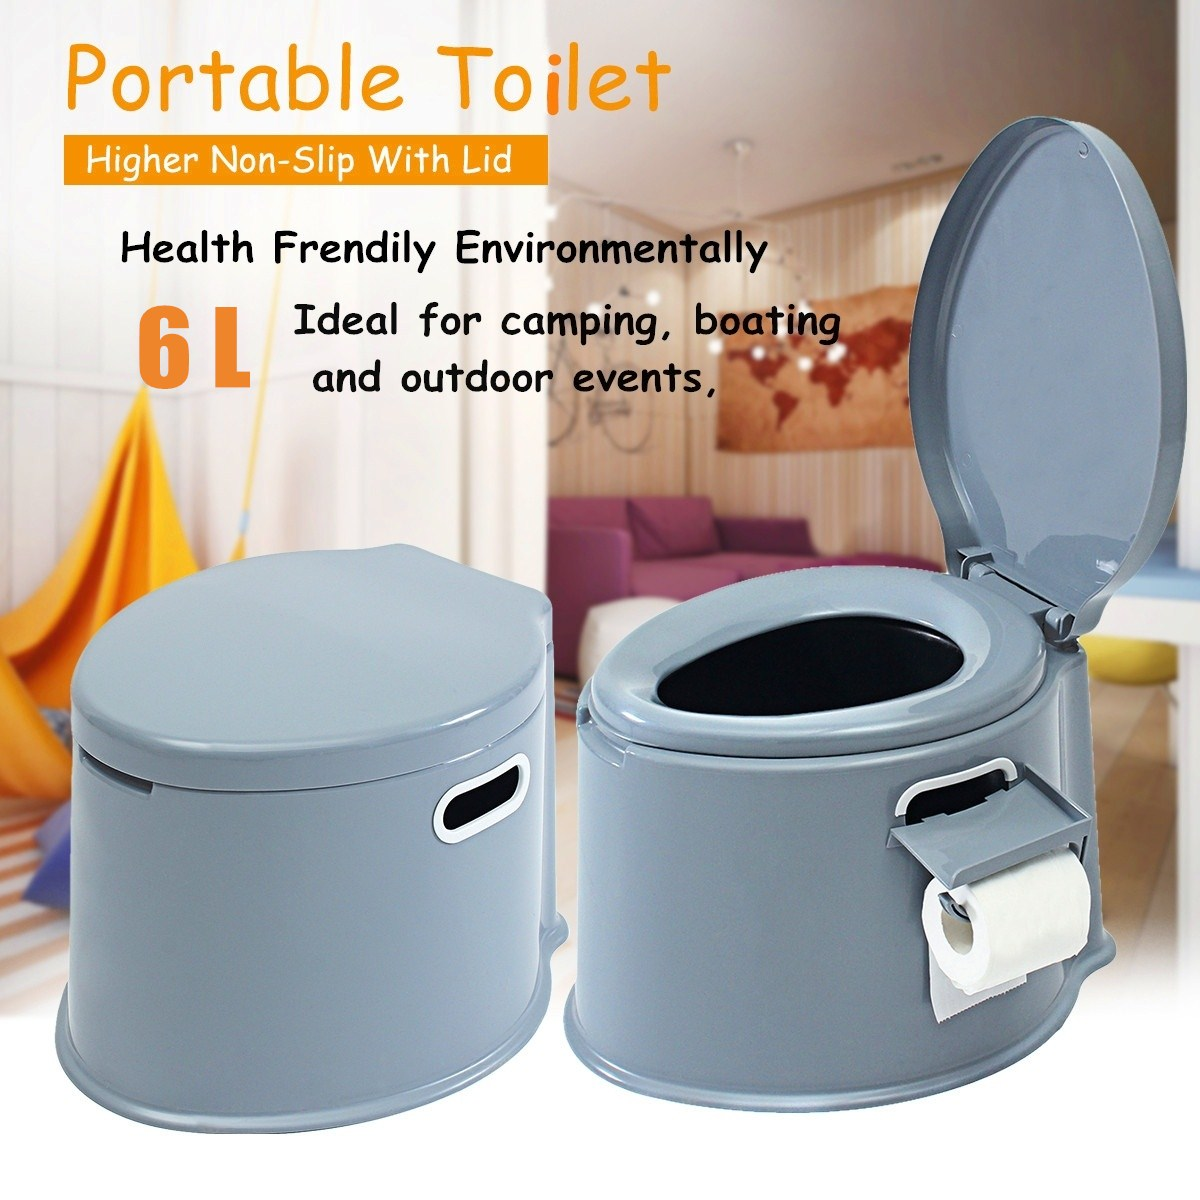 Portable 6L Large Adult Toilet Outdoor Camping Hiking Elderly Travel Disabled Handicapped